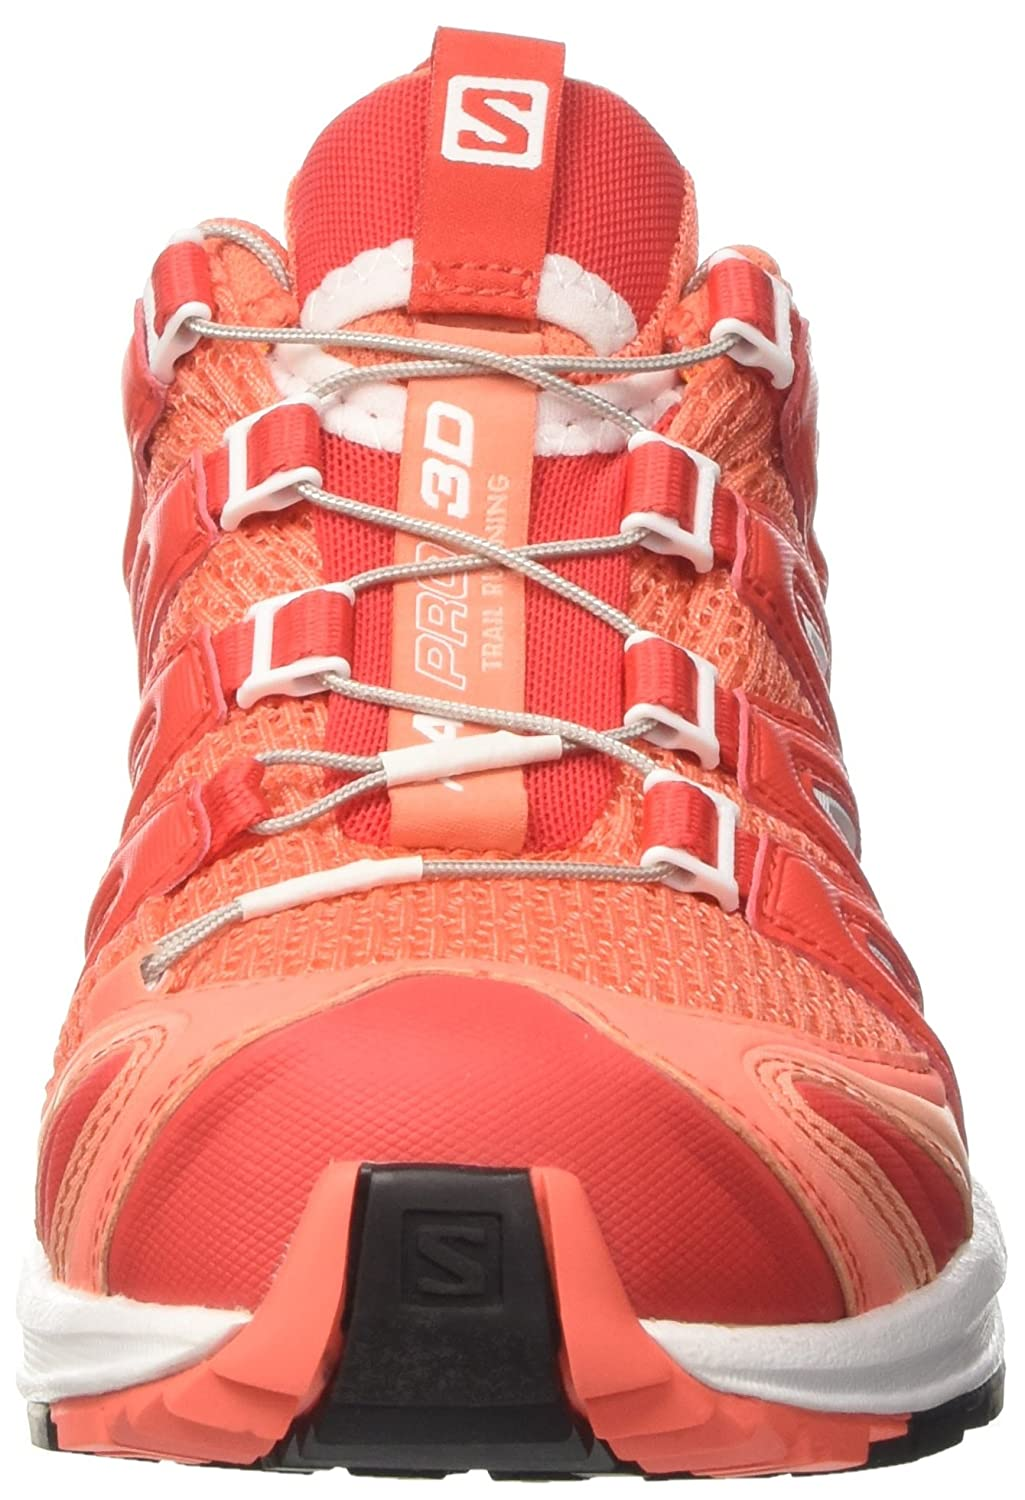 Salomon Damen Xa Pro (schwarz/Virtual 3D Trekking-& Wanderhalbschuhe Orange (schwarz/Virtual Pro Pink) 7002f8